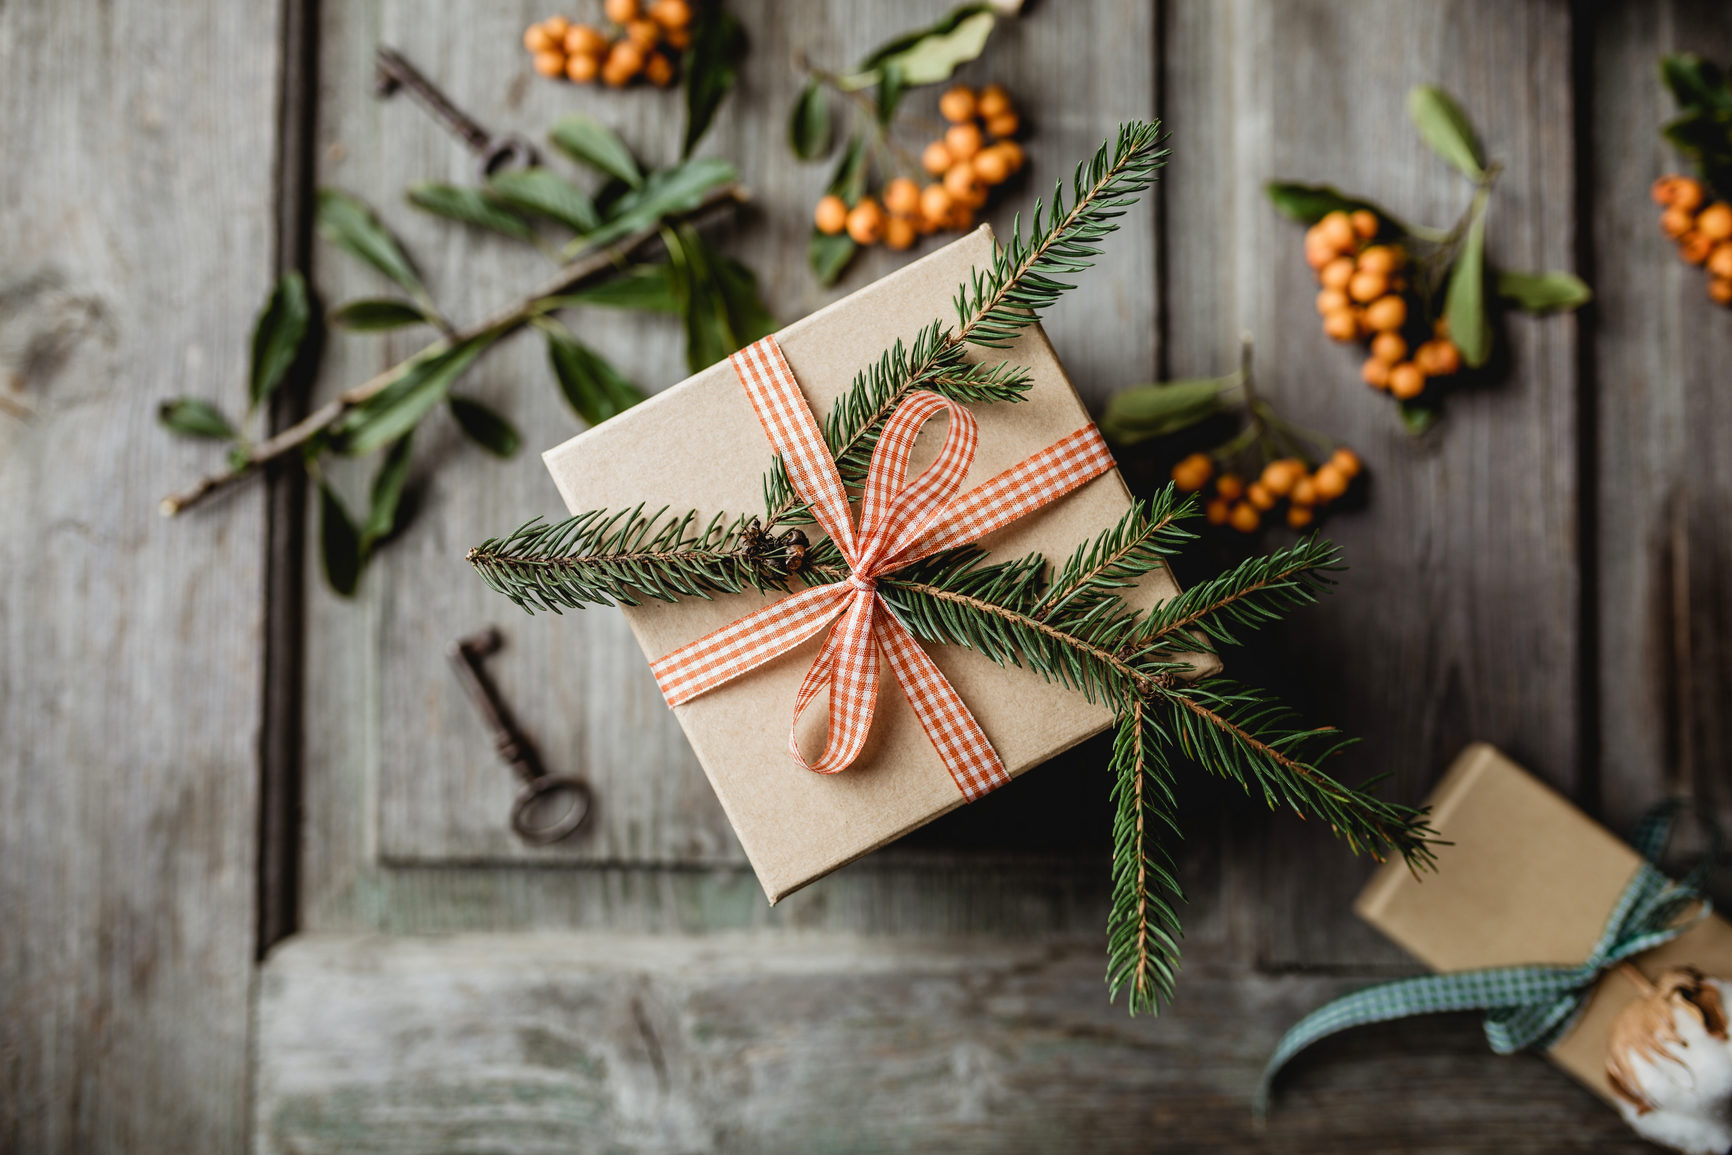 a gift wrapped and covered in pine tree clippings